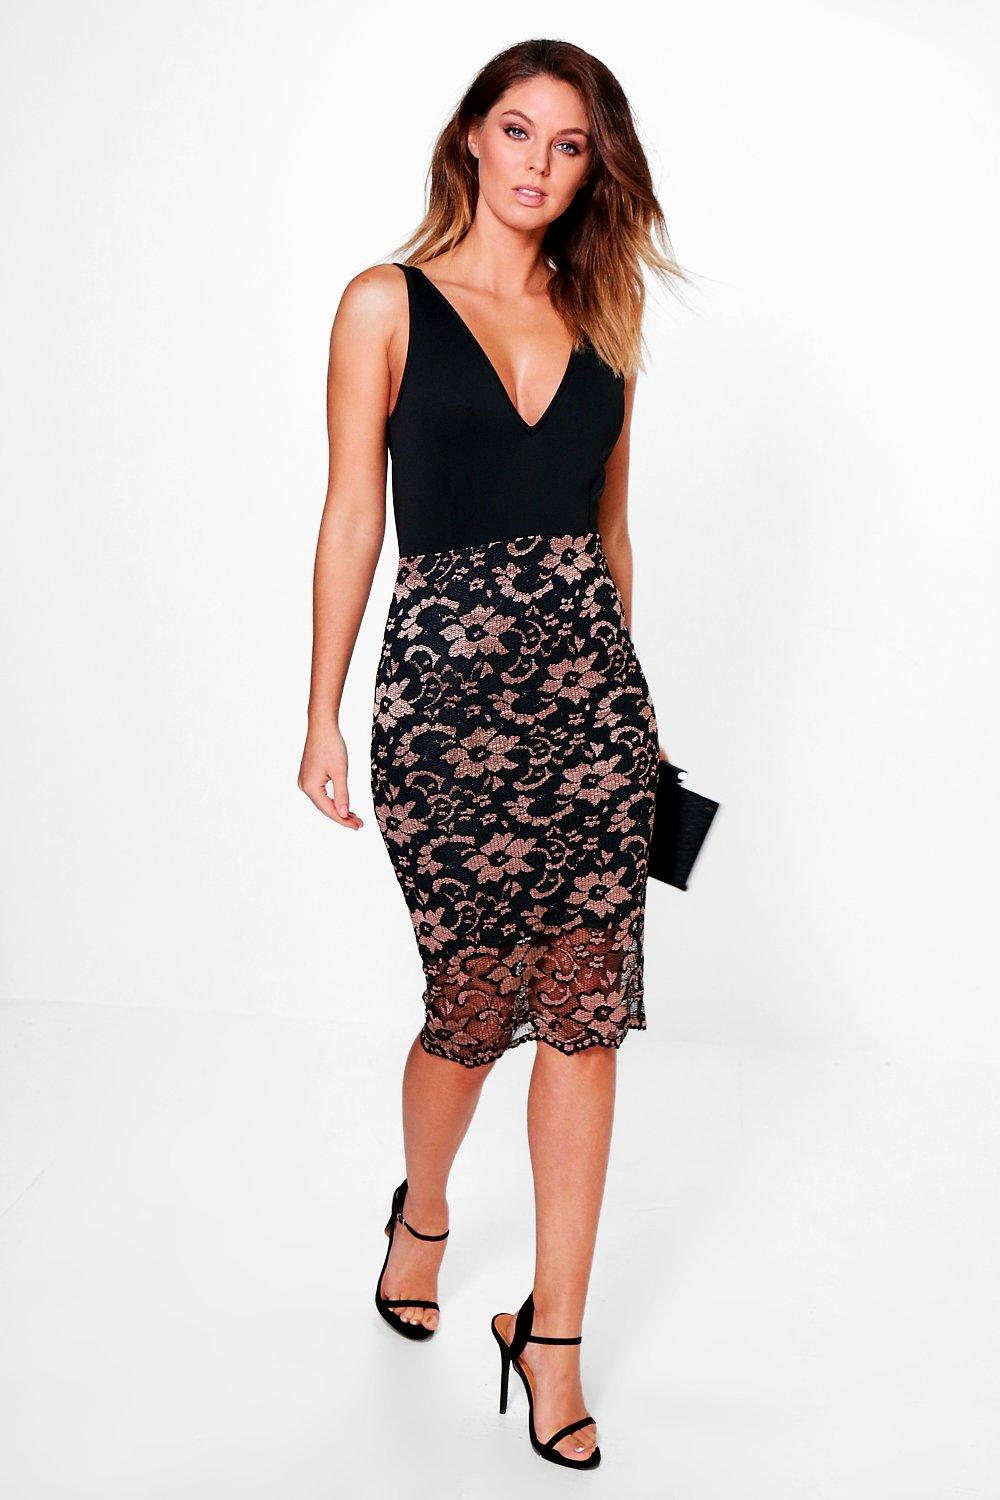 Bella Plunge Metallic Lace Skirt Midi Dress